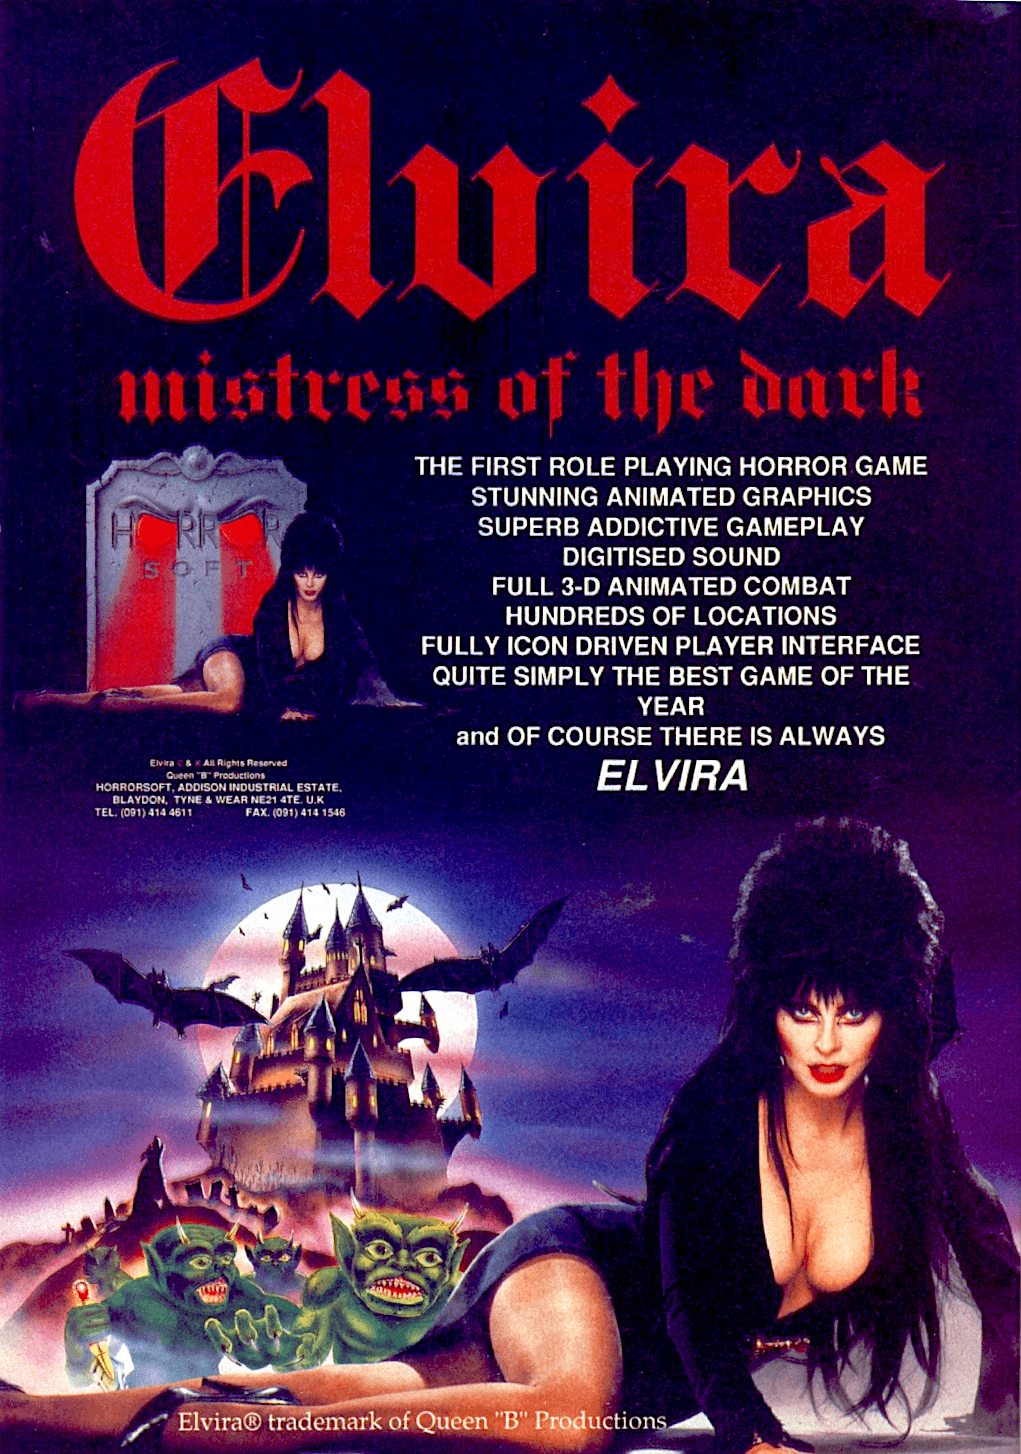 Image For Post   Elvira: Mistress of the Dark is an adventure game. The game uses a first-person perspective in which the hero wanders around solving puzzles, and combating with undead creatures that have overrun Elvira's Castle.  This game features dozens of different death sequences. If the cook in the kitchen kills you, for example, you can see your head floating in her cauldron. The game also has a real-time combat system. You have to time your attacks and blocks in order to defeat the enemy.